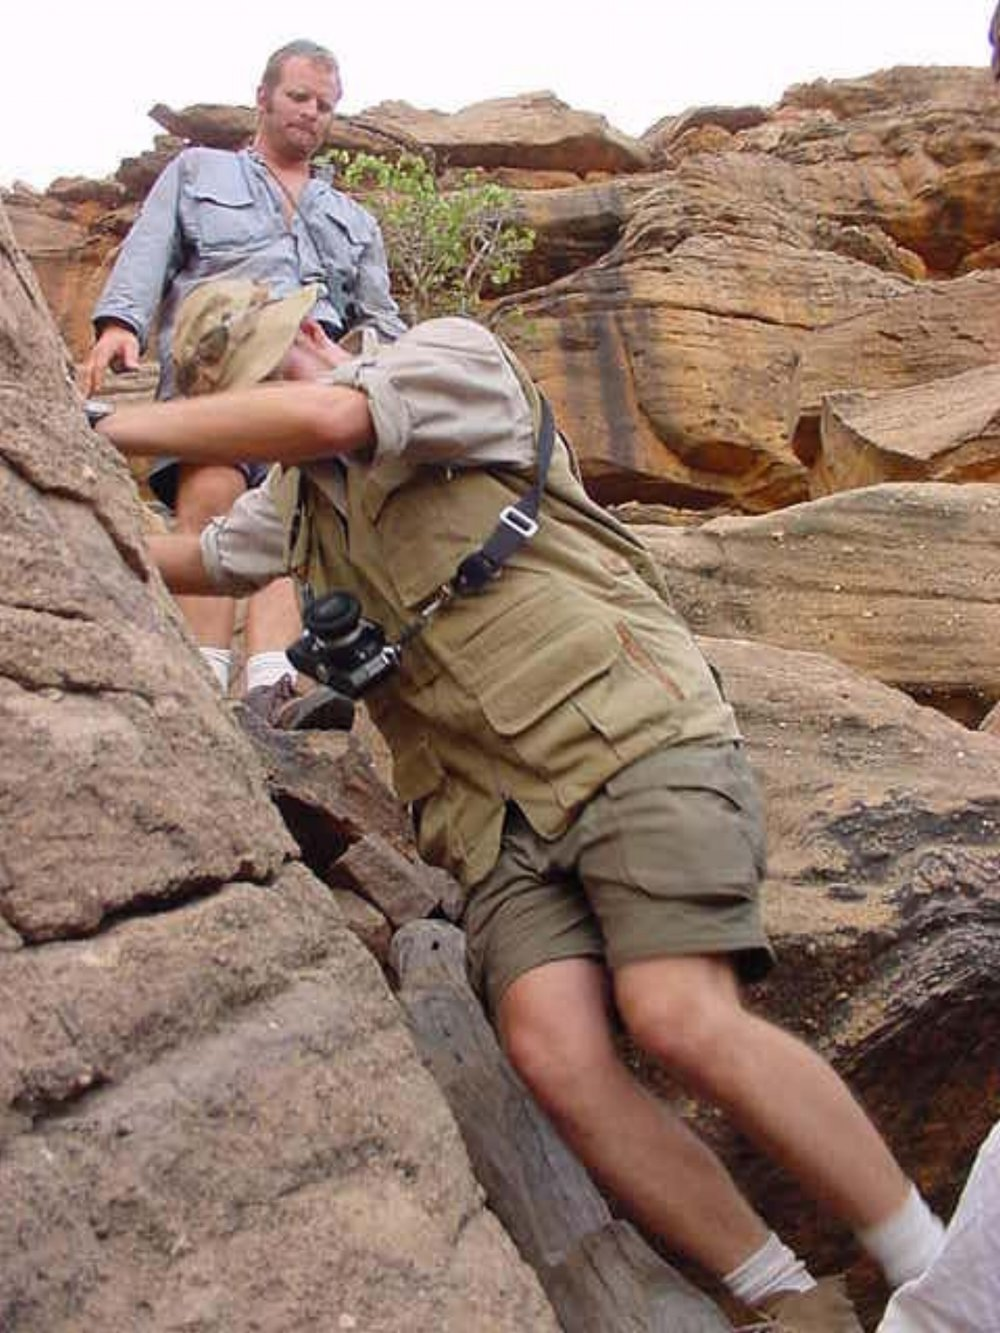 Carefully navigating the rocks